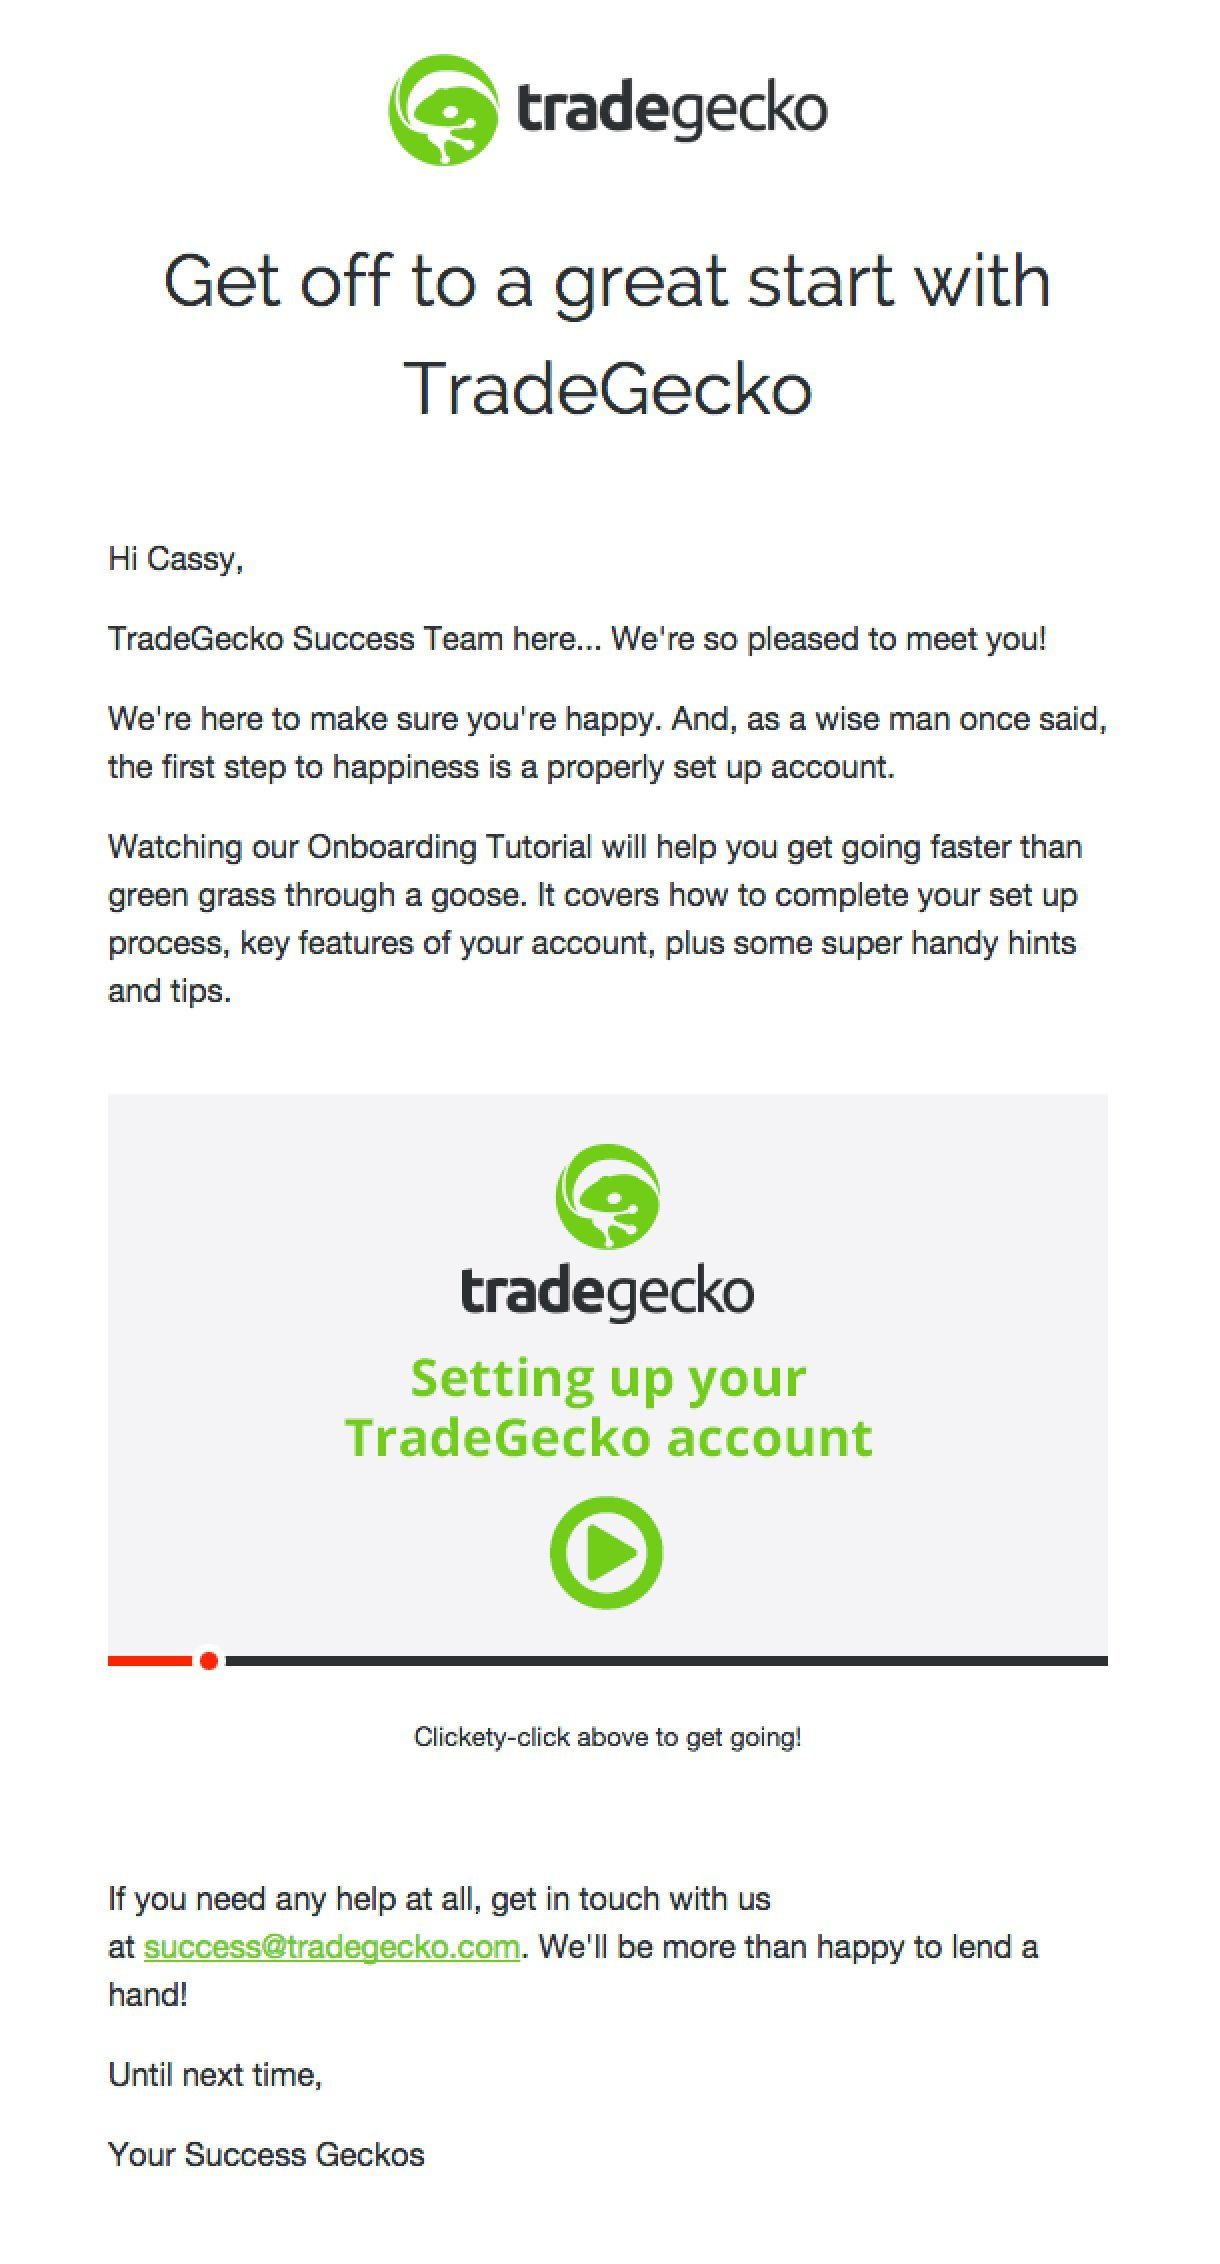 TradeGecko welcome email example bright green colours